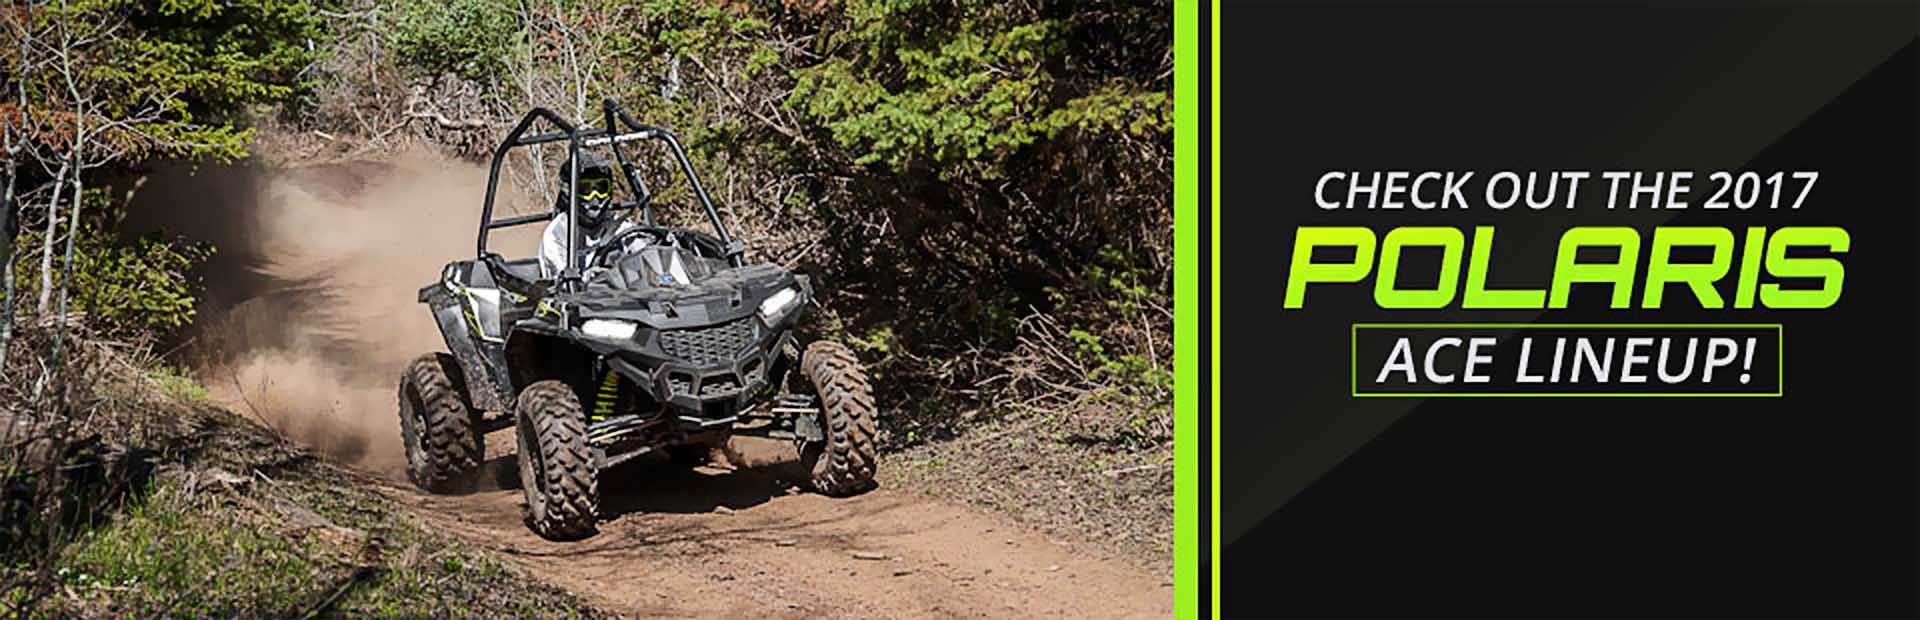 2017 Polaris ACE Lineup: Click here to see the selection.